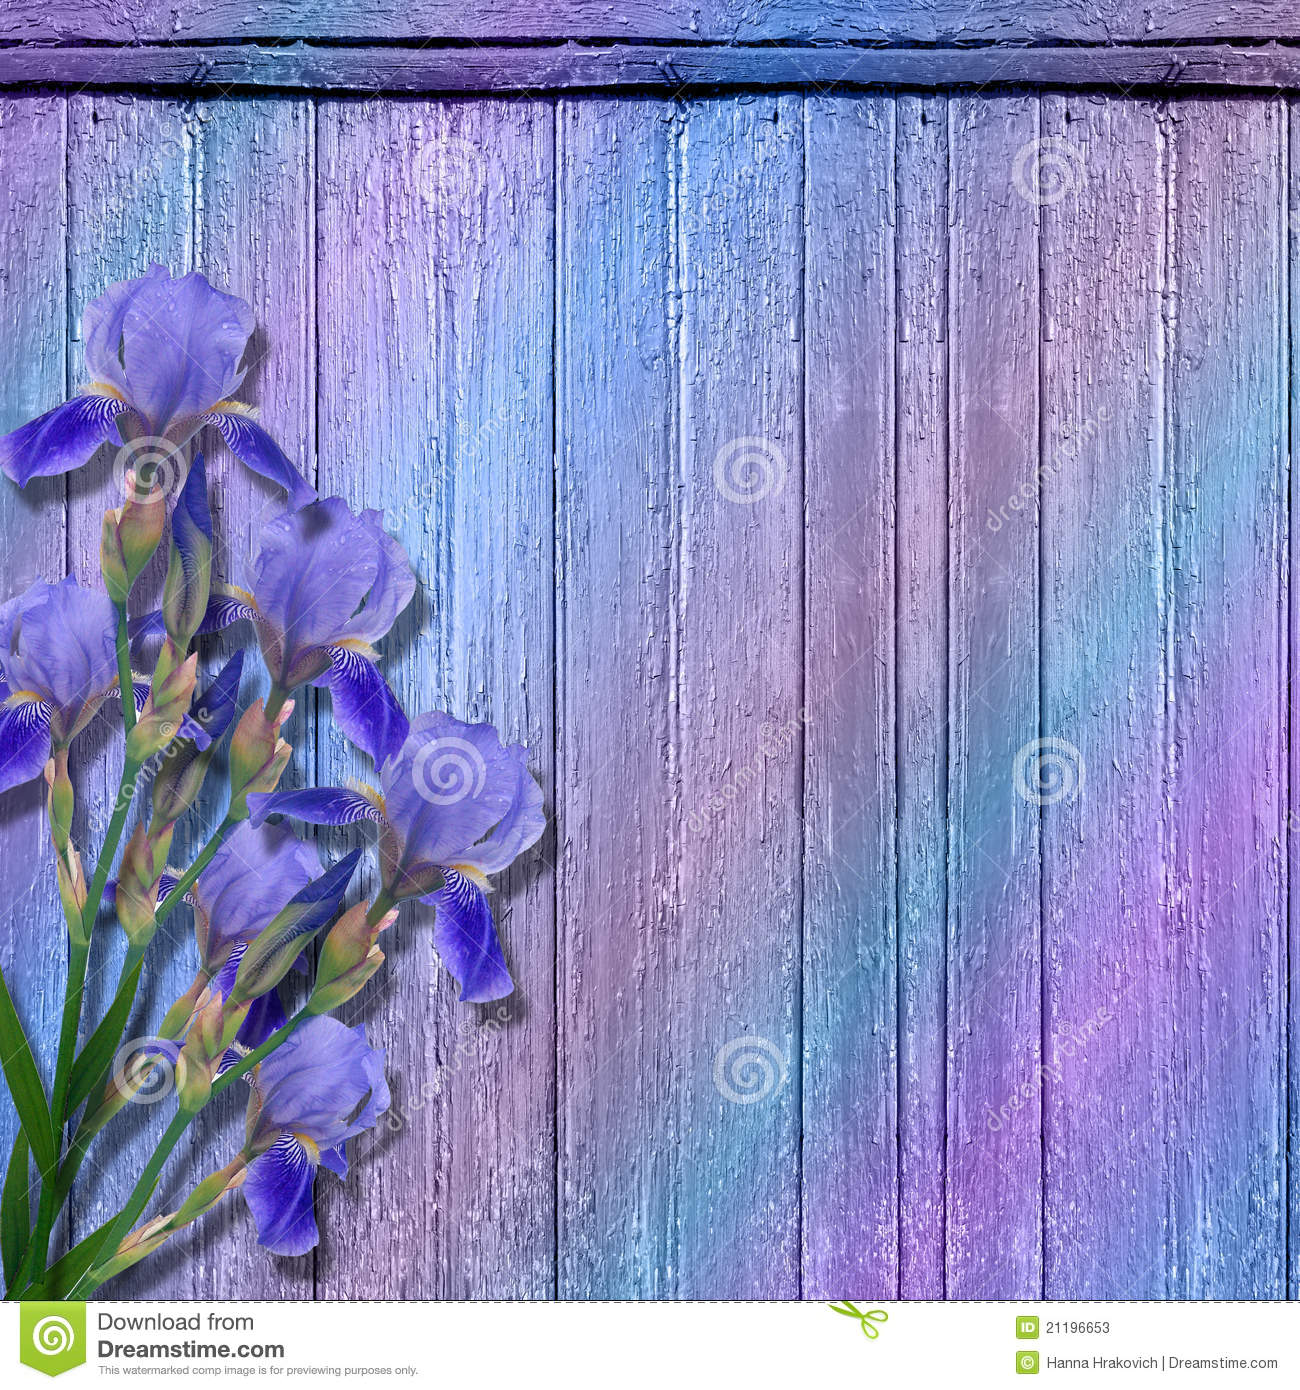 The grunge wood background with flowers.